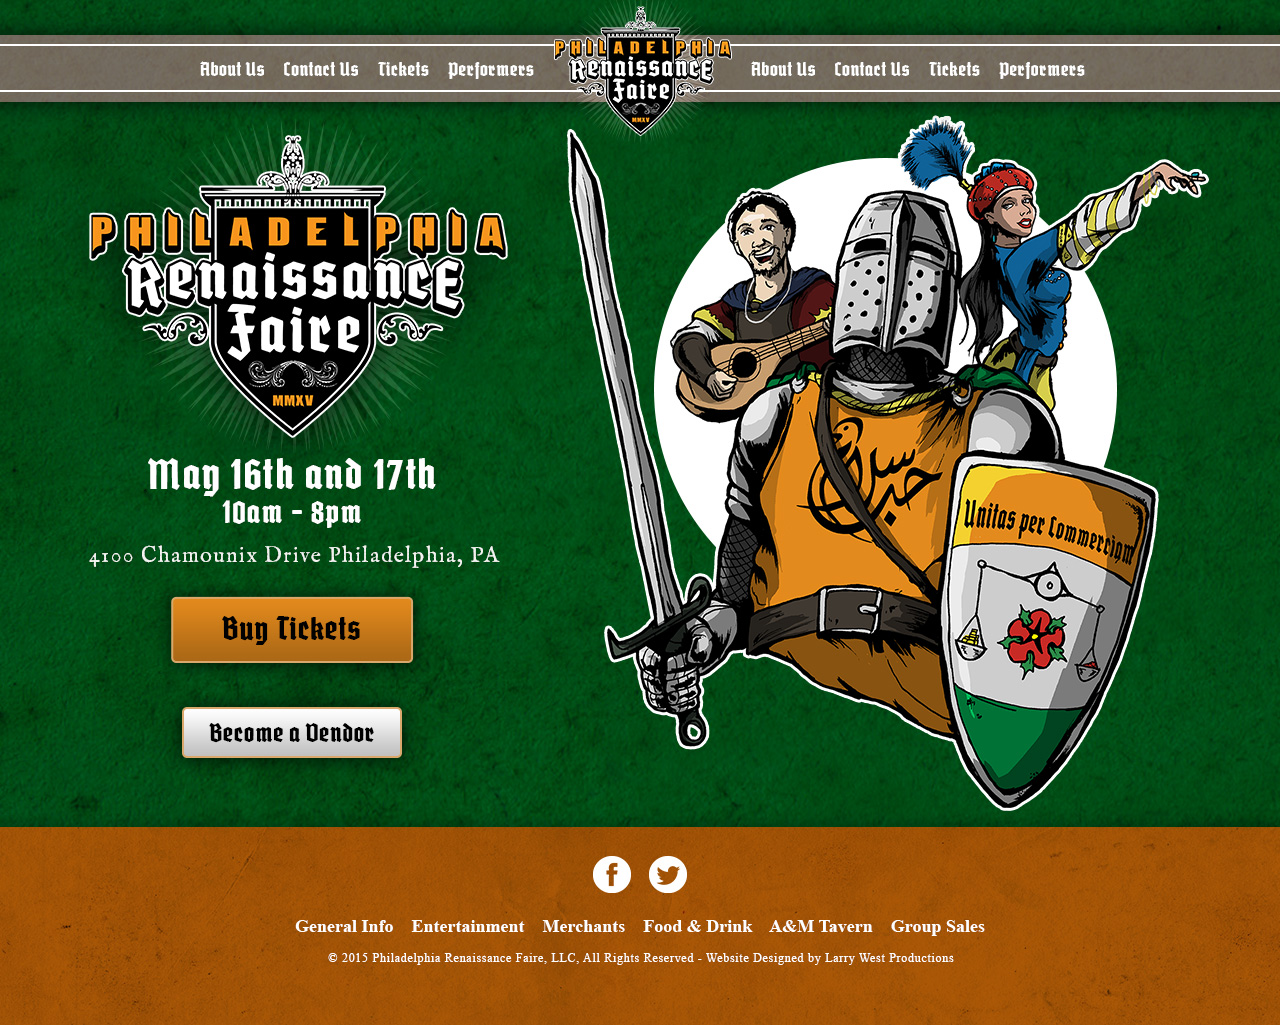 Philadelphia Renaissance Faire - Website Design